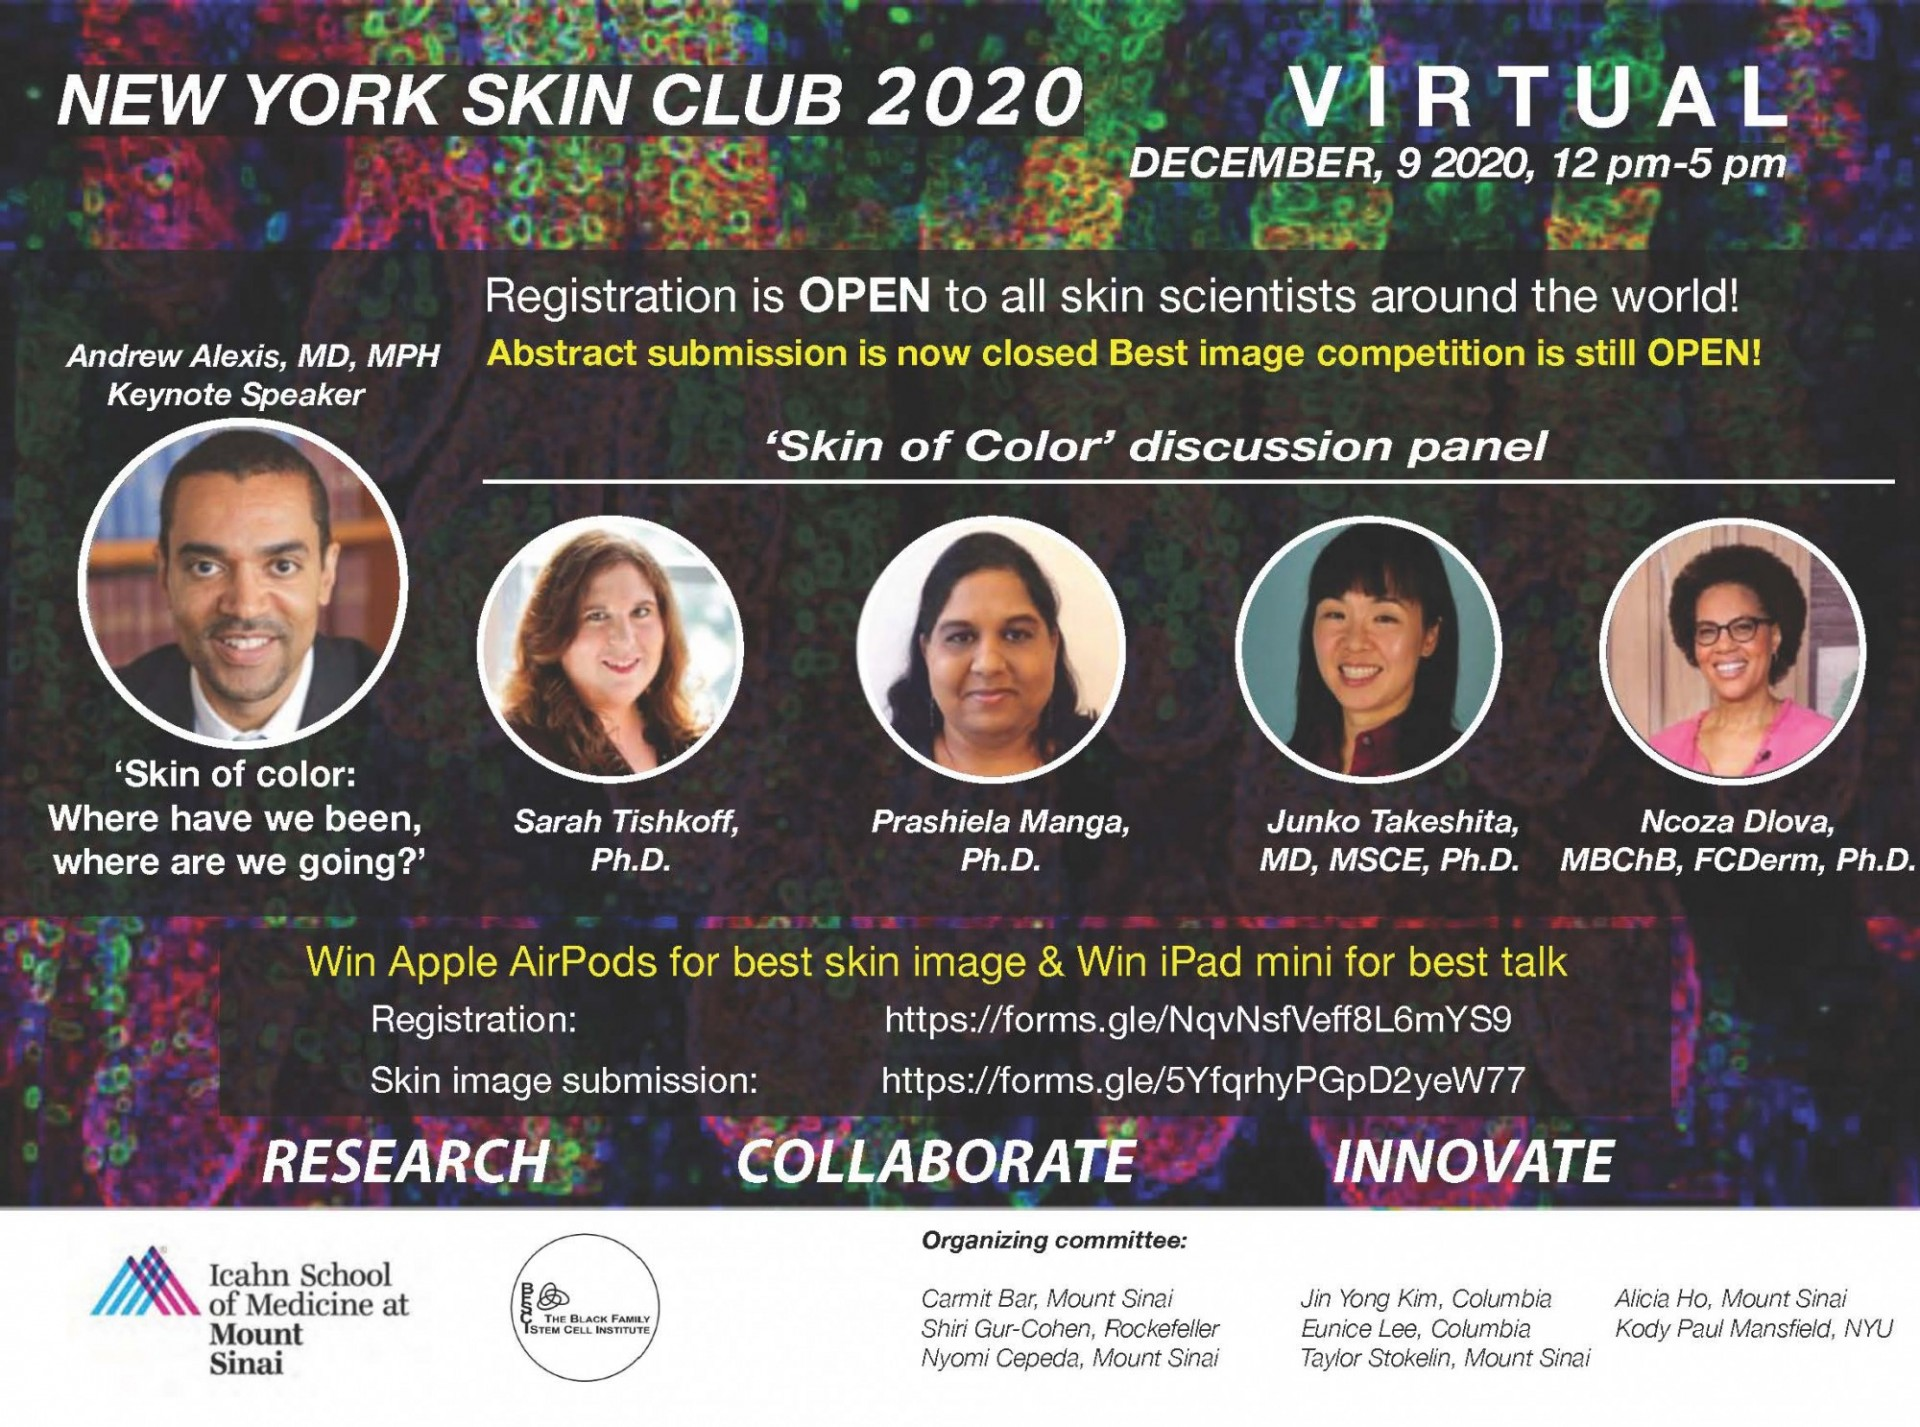 New York Skin Club 2020